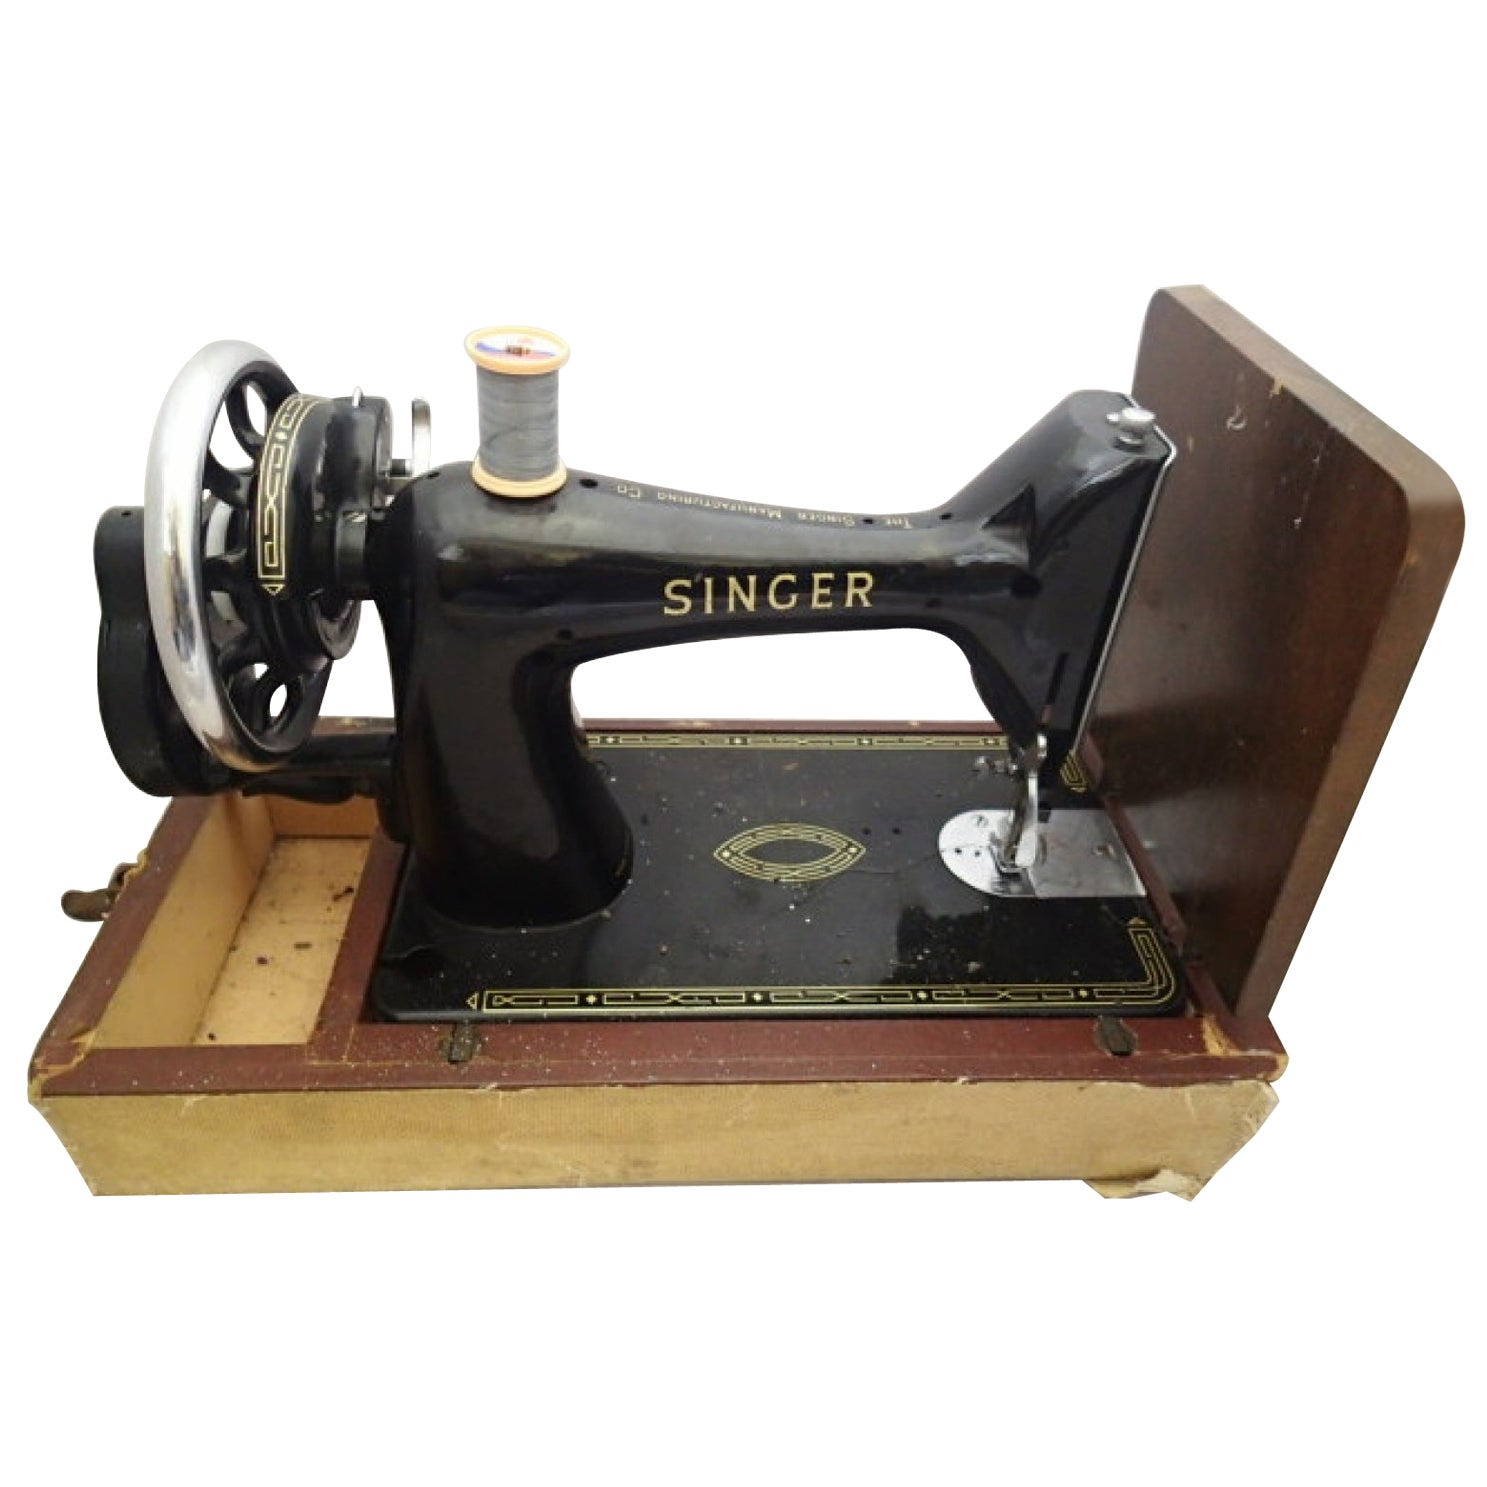 Vintage Singer Sewing Machine, 20th Century